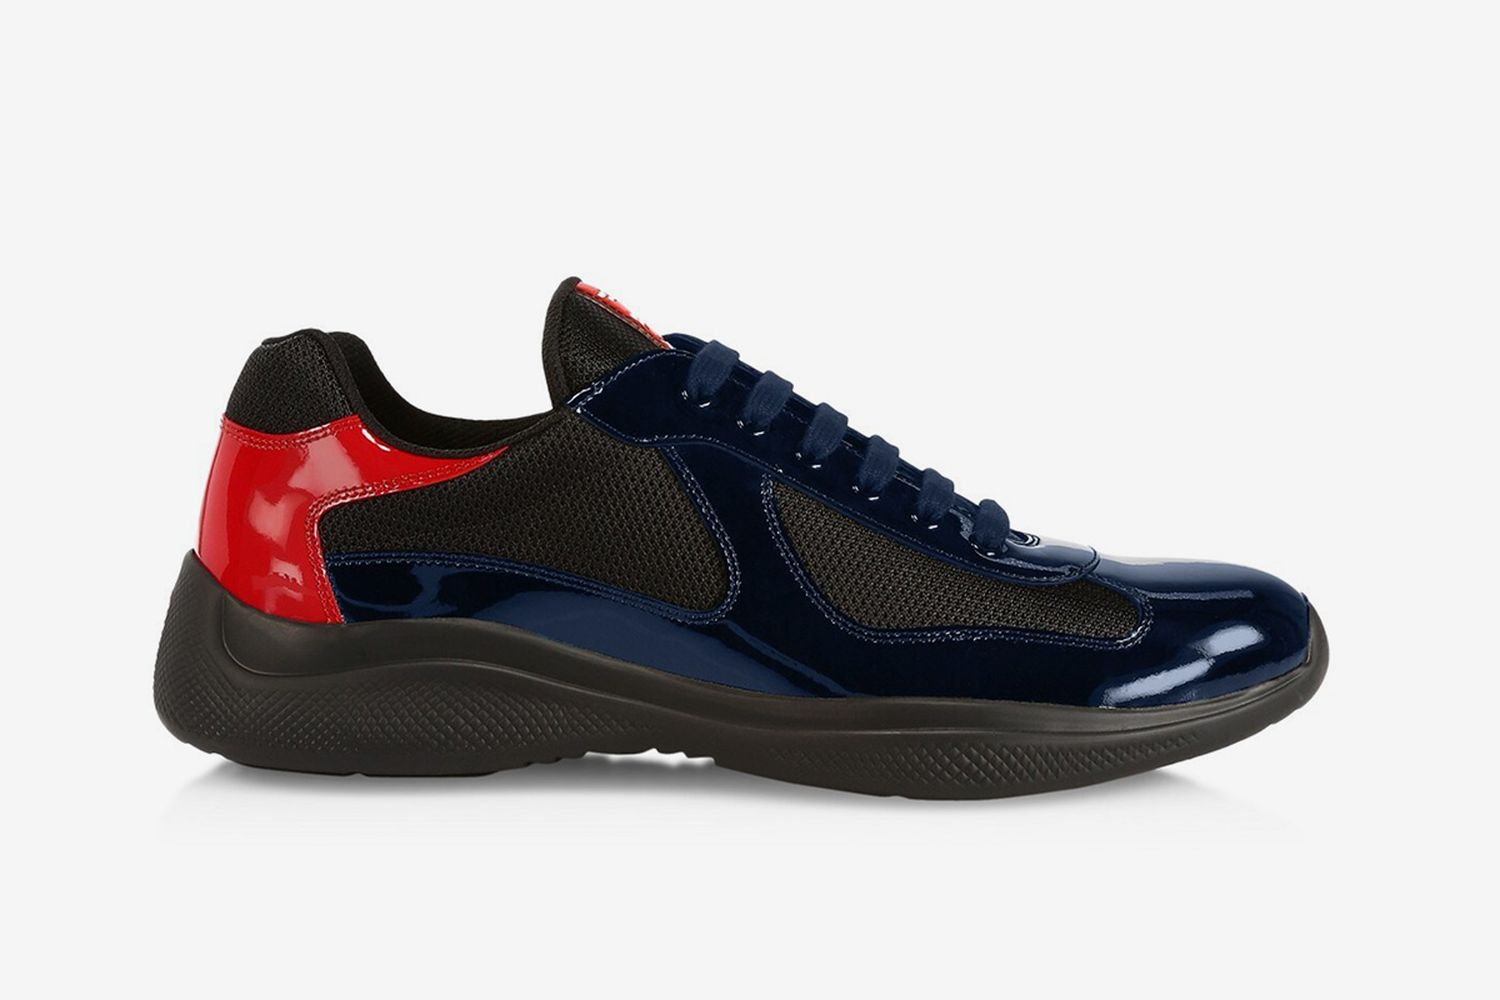 America's Cup Sneakers